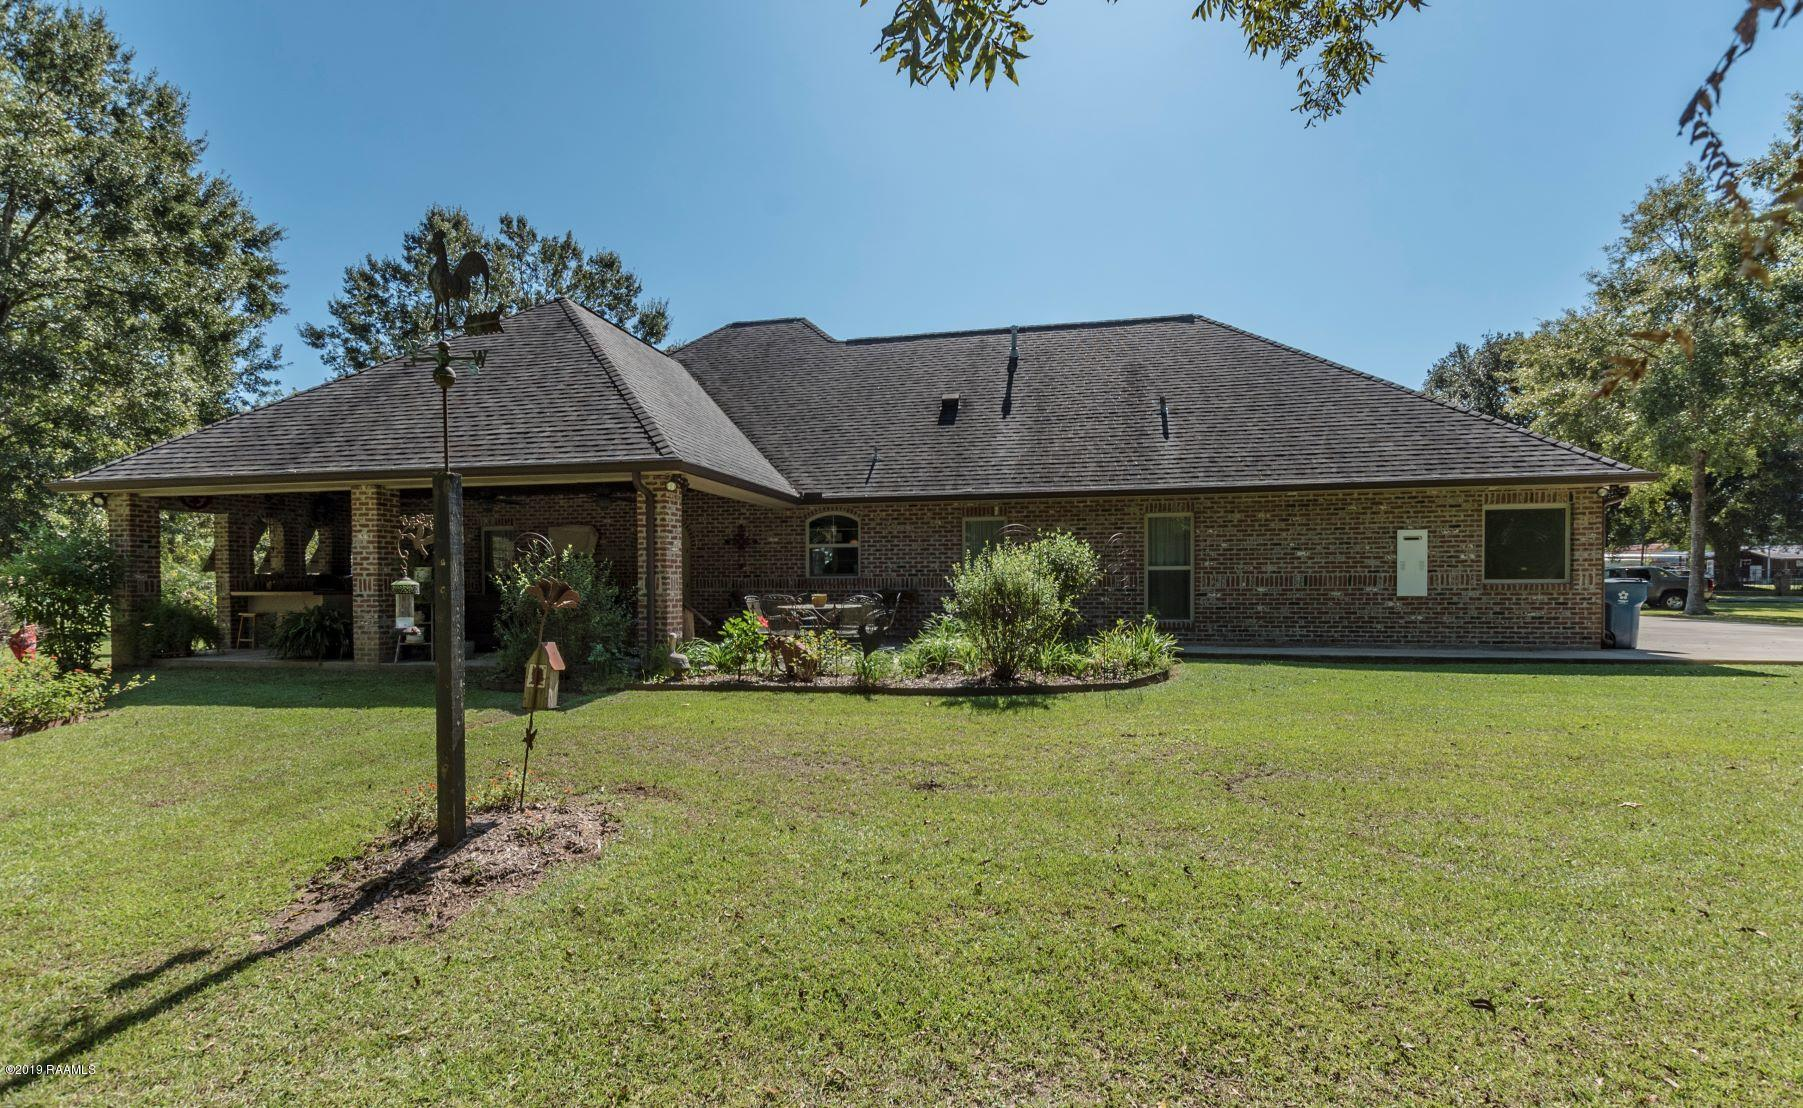 704 Ombrage Road, Carencro, LA 70520 Photo #33